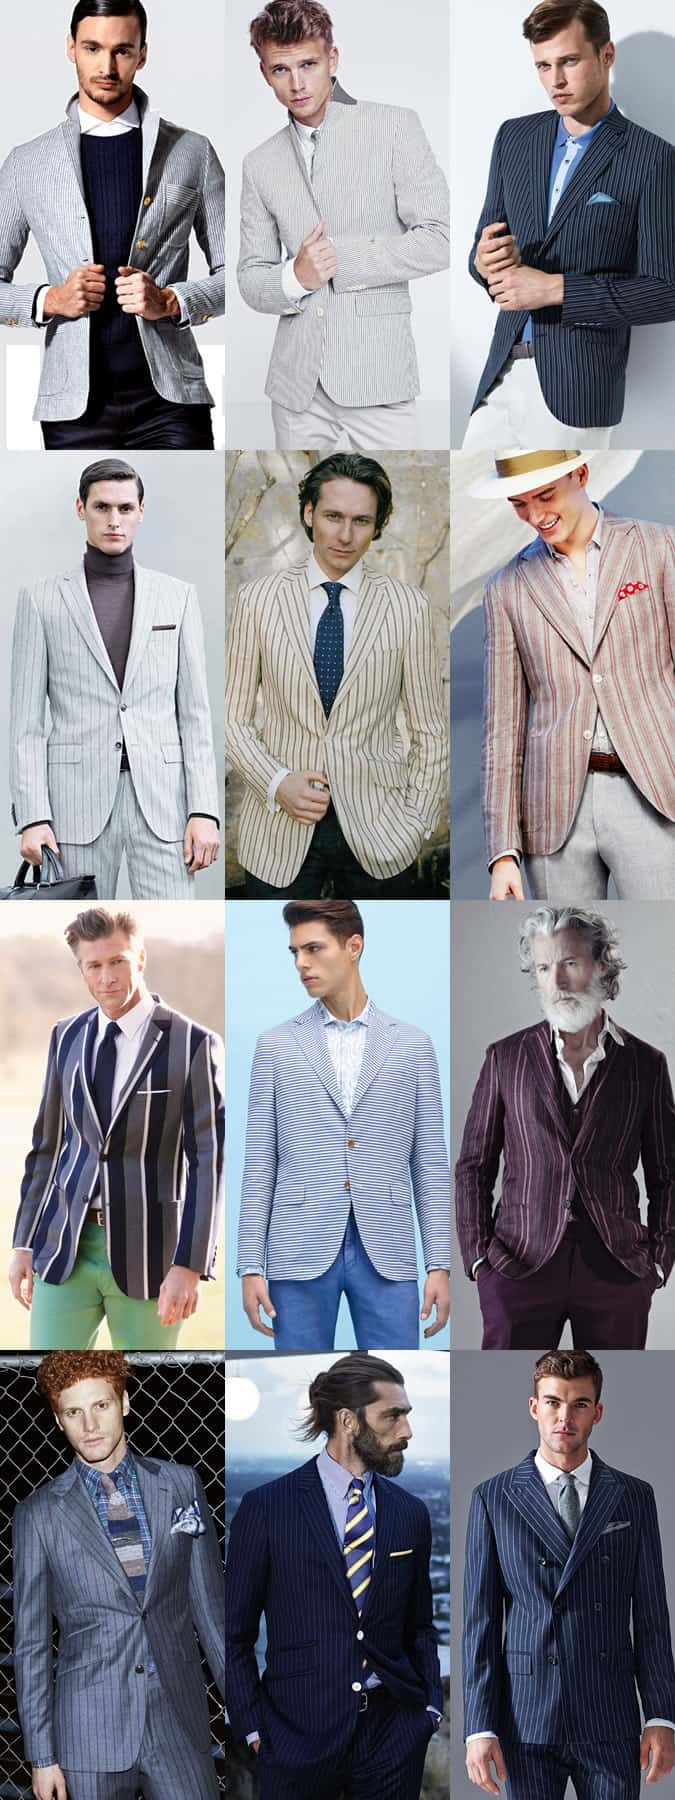 Men's Striped Tailoring - Suits and Blazers - Outfit Inspiration Lookbook